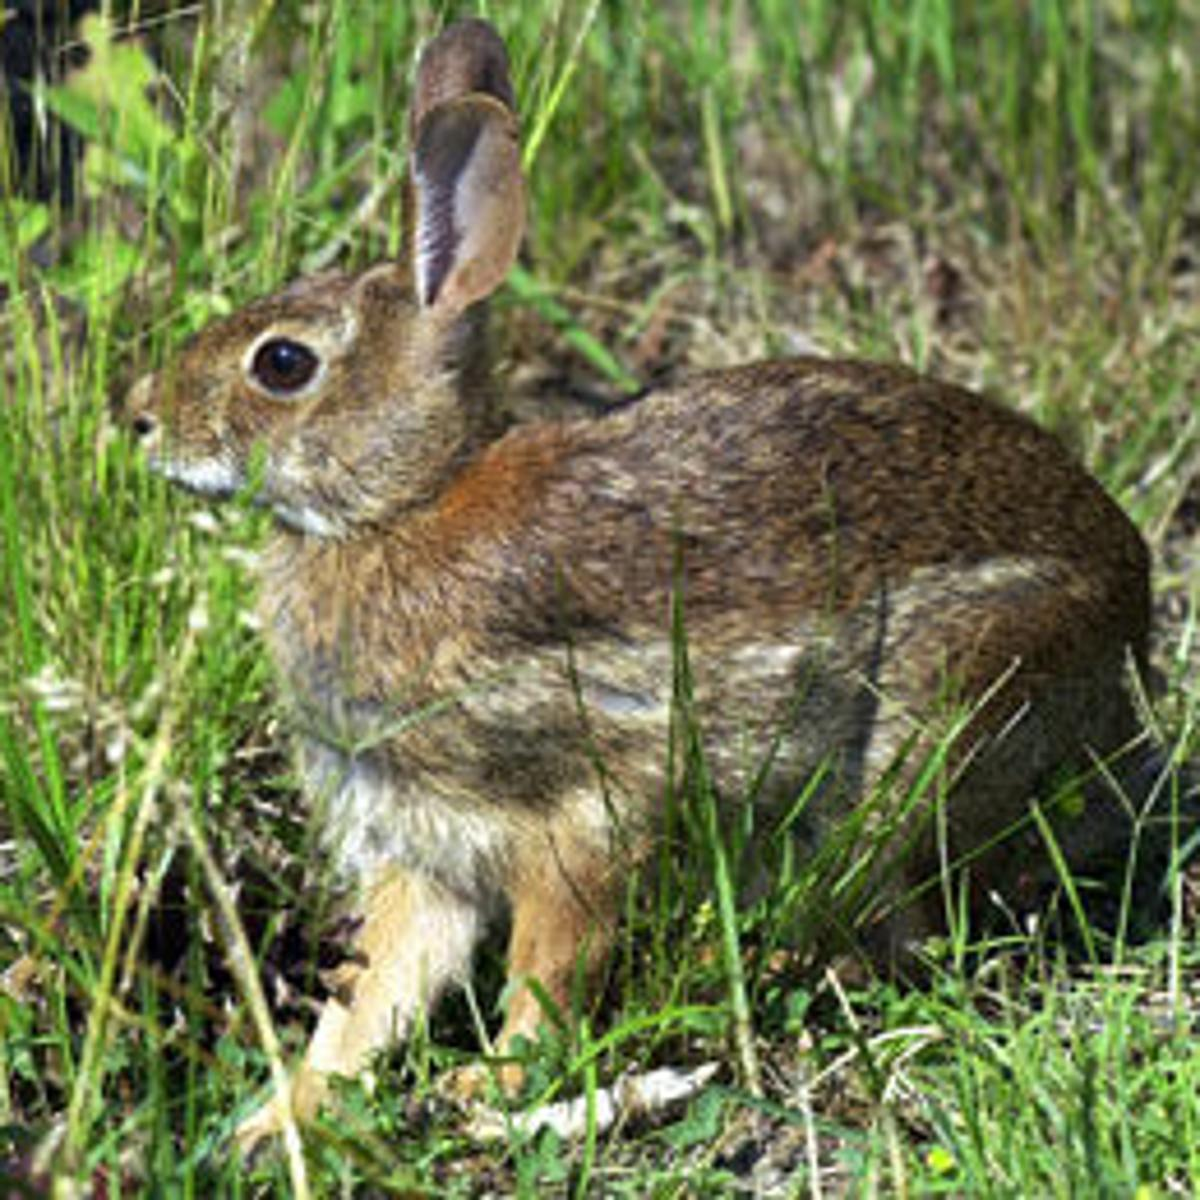 Keeping hares out of your garden not easy | Entertainment